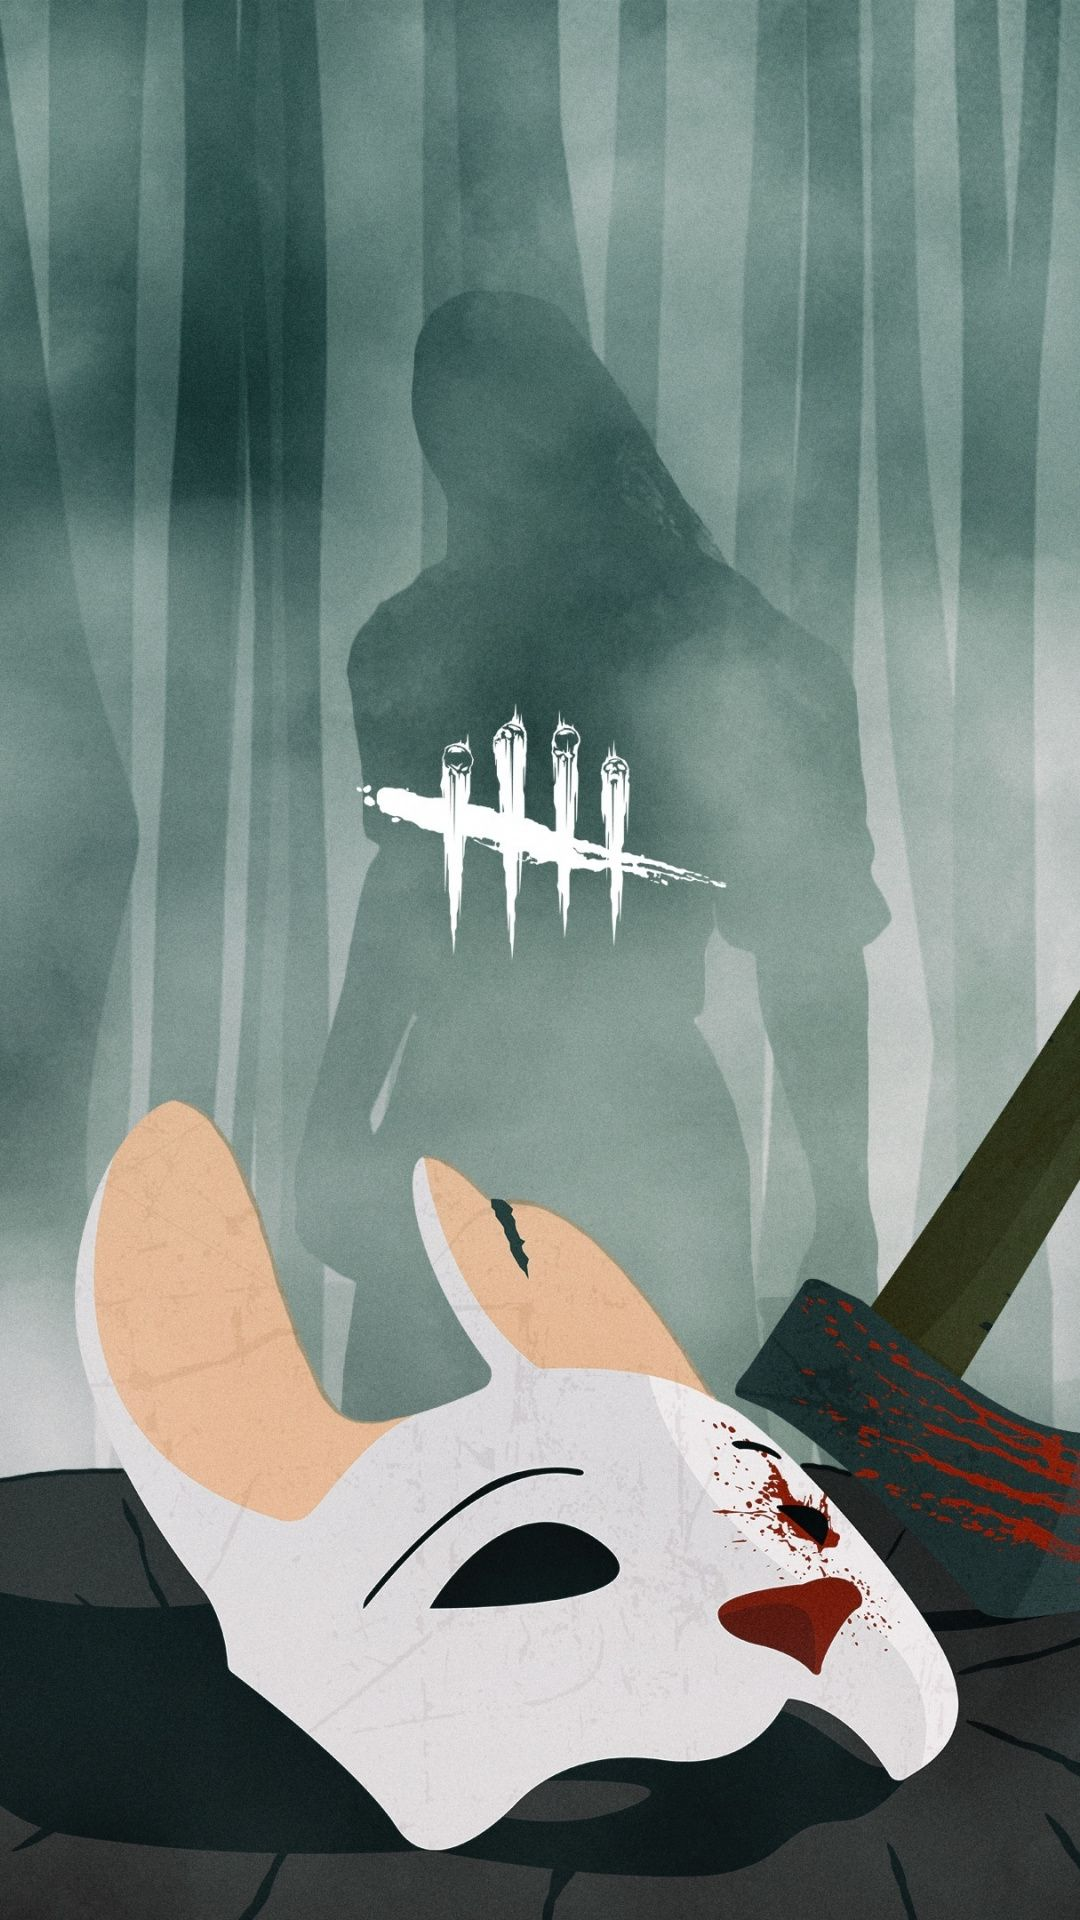 Huntress Dead by Daylight mask and axe game 1080x1920 1080x1920